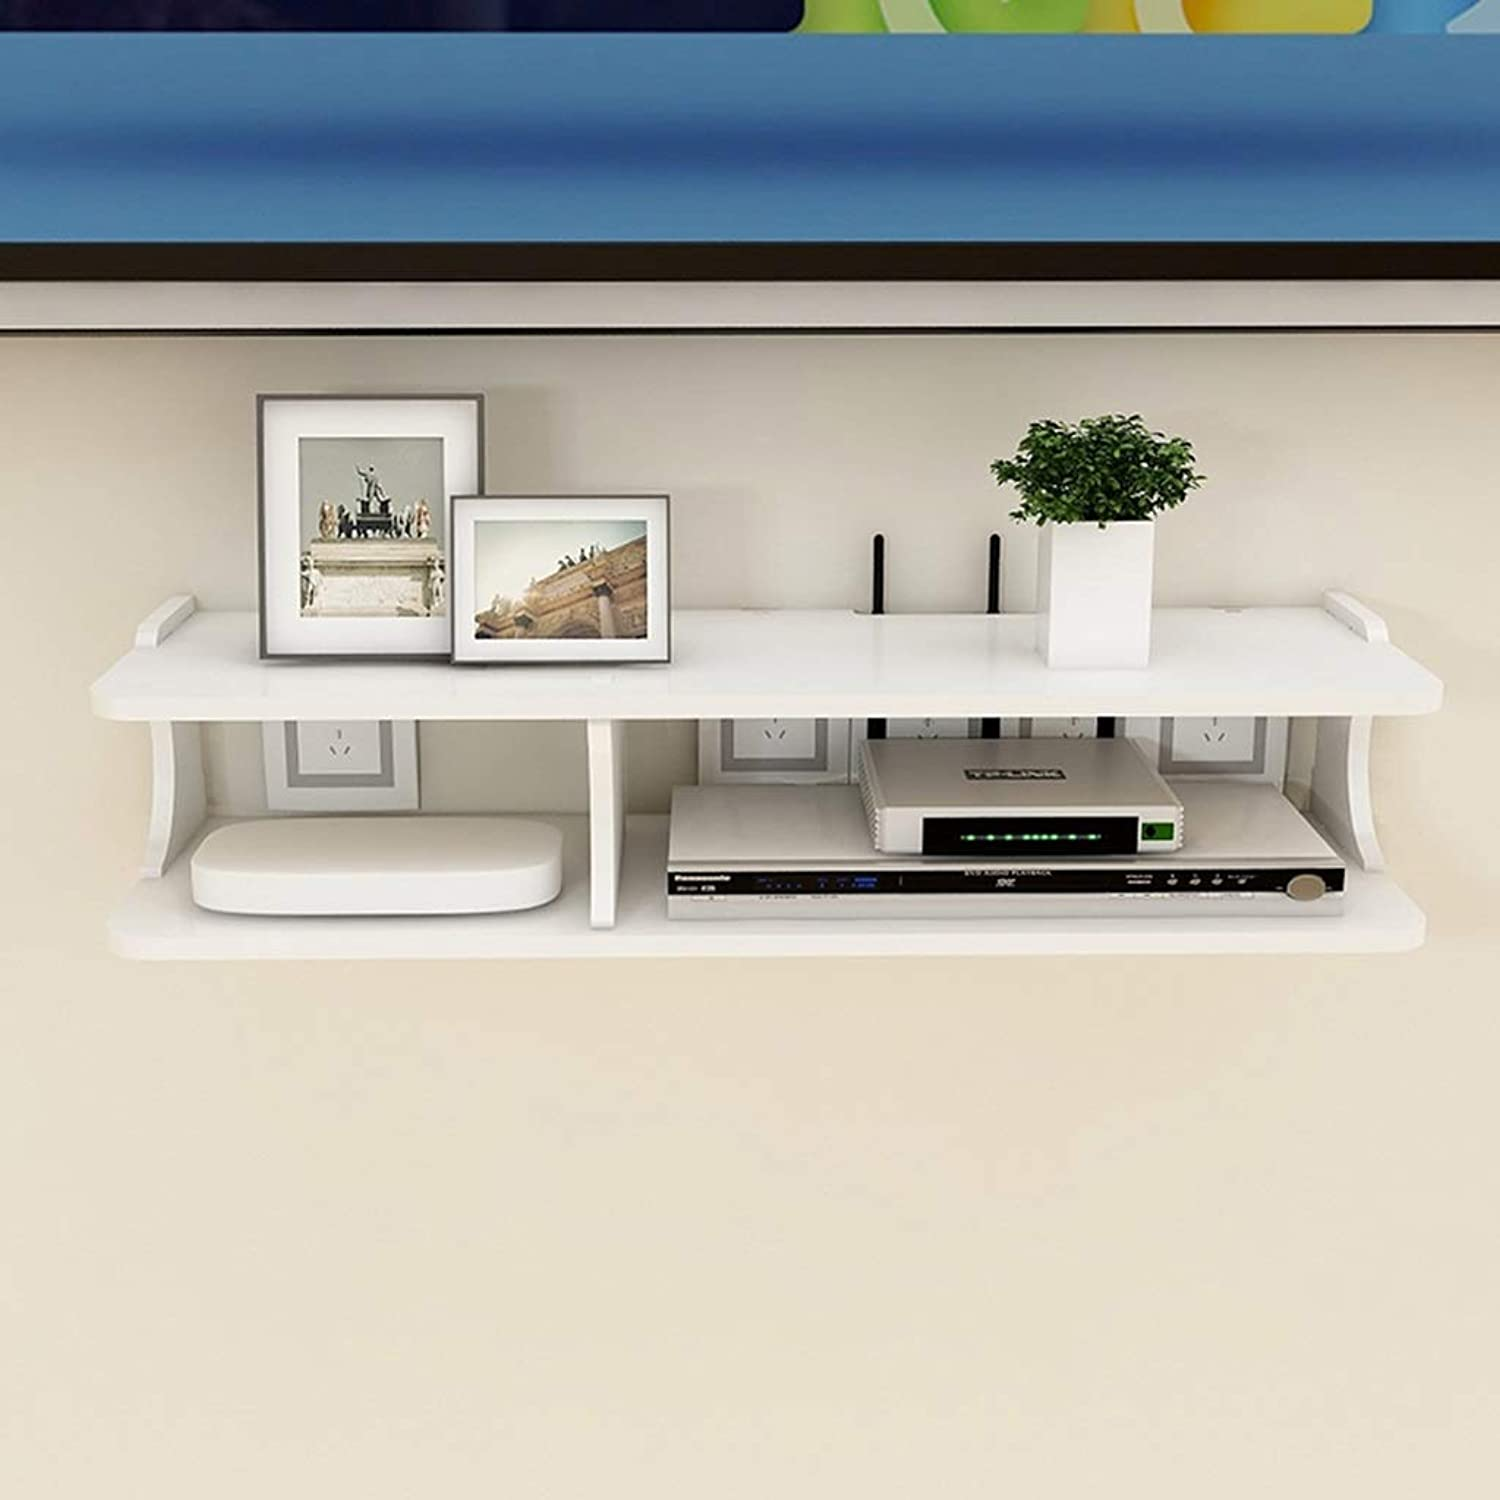 YAXIAO Wall Frame TV Cabinet TV Rack Set-top Box Shelf TV Console Storage Unit Storage Rack Cable Box White Floating Wall Shelf (Size   60×13.6×20cm)